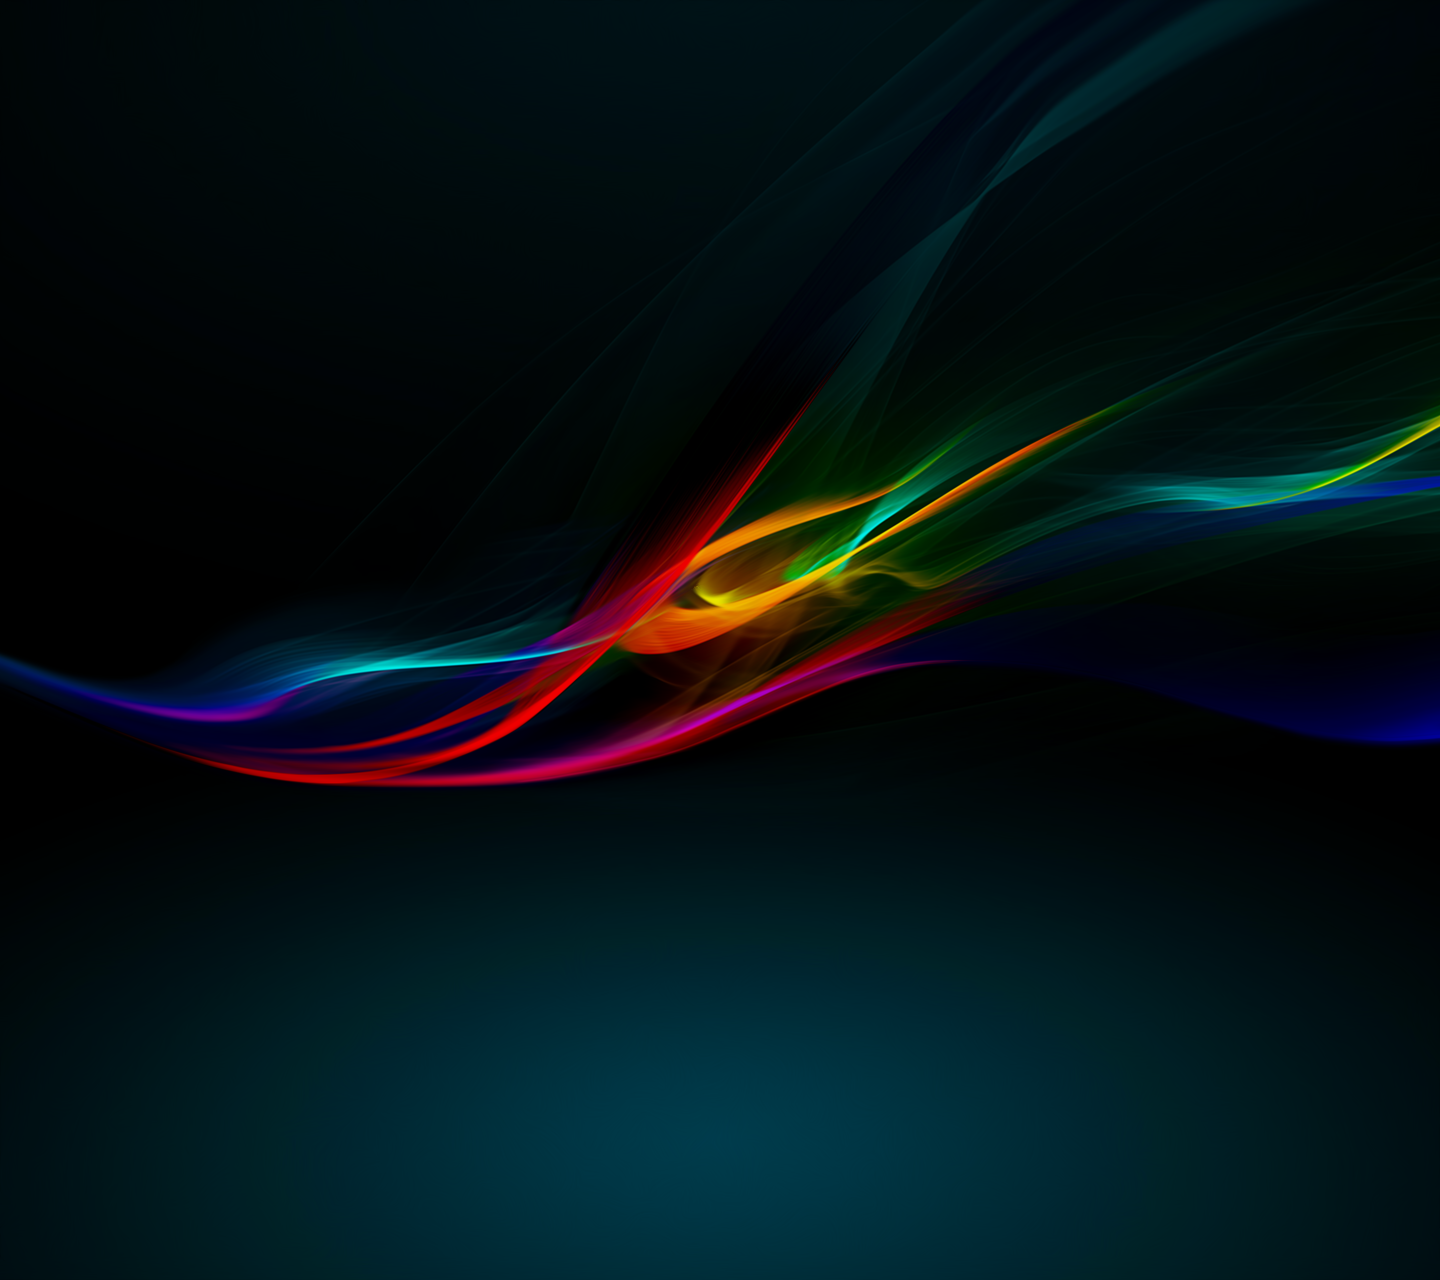 Sony Xperia HD Wallpapers